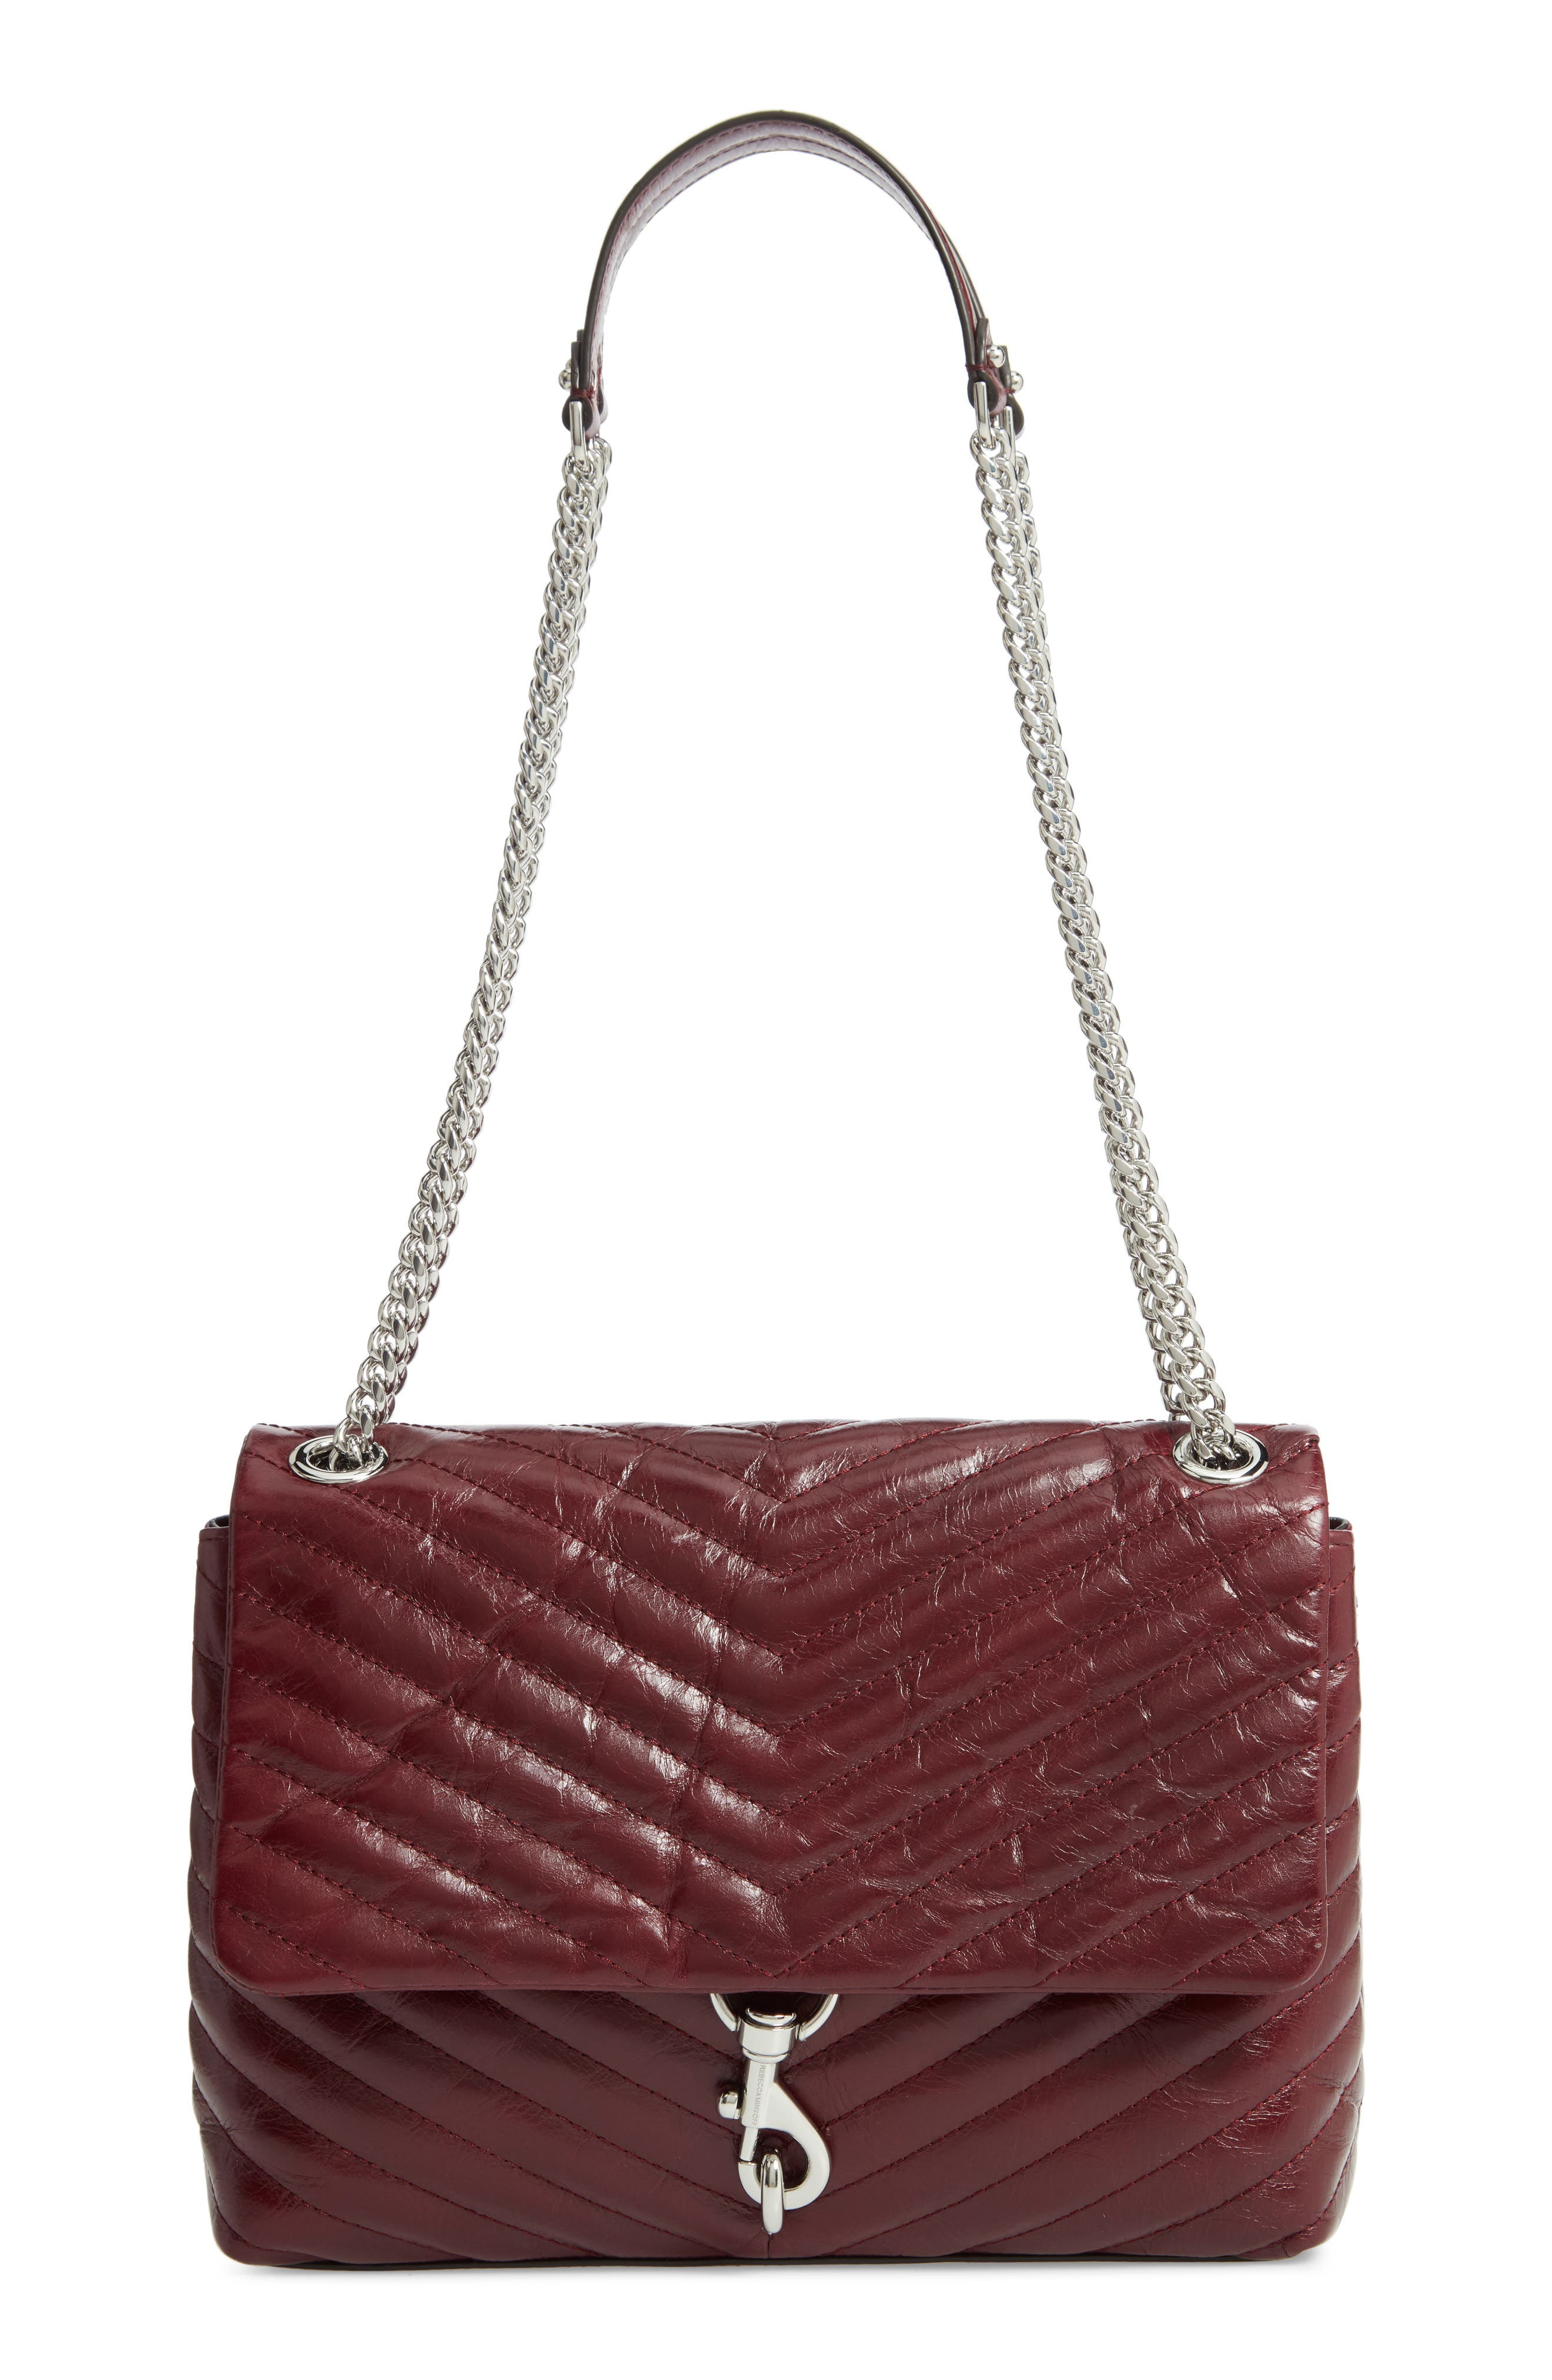 Edie Flap Front Leather Shoulder Bag,                         Main,                         color, BORDEAUX